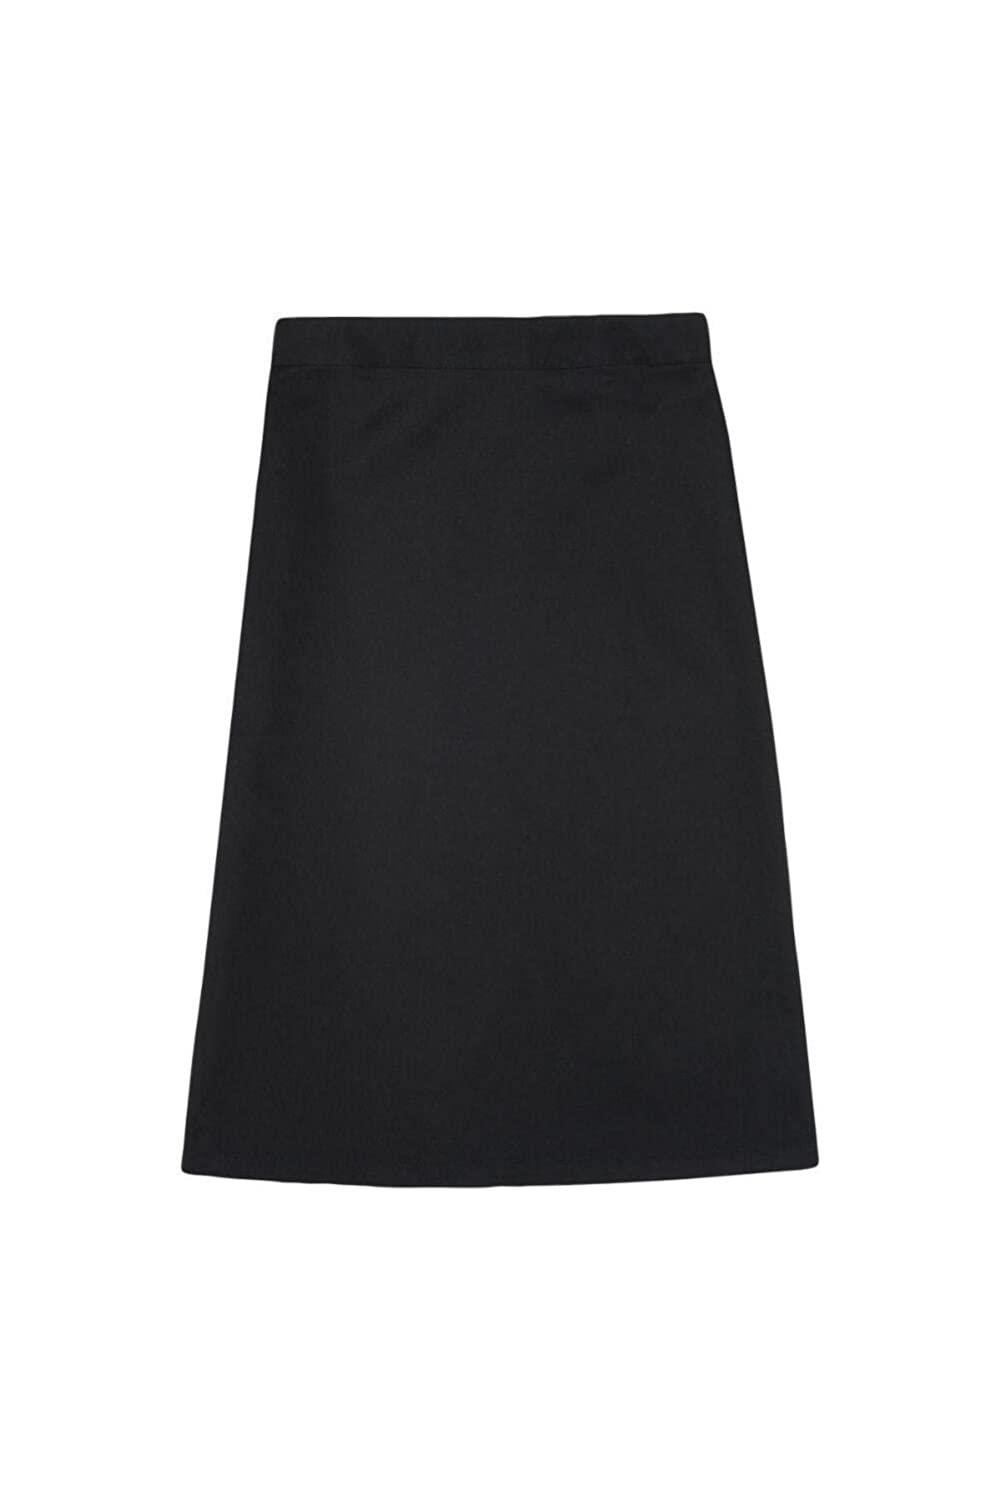 French Toast Long Skirt with Back Panel Girls French Toast School Uniforms 1373B BLAC 5